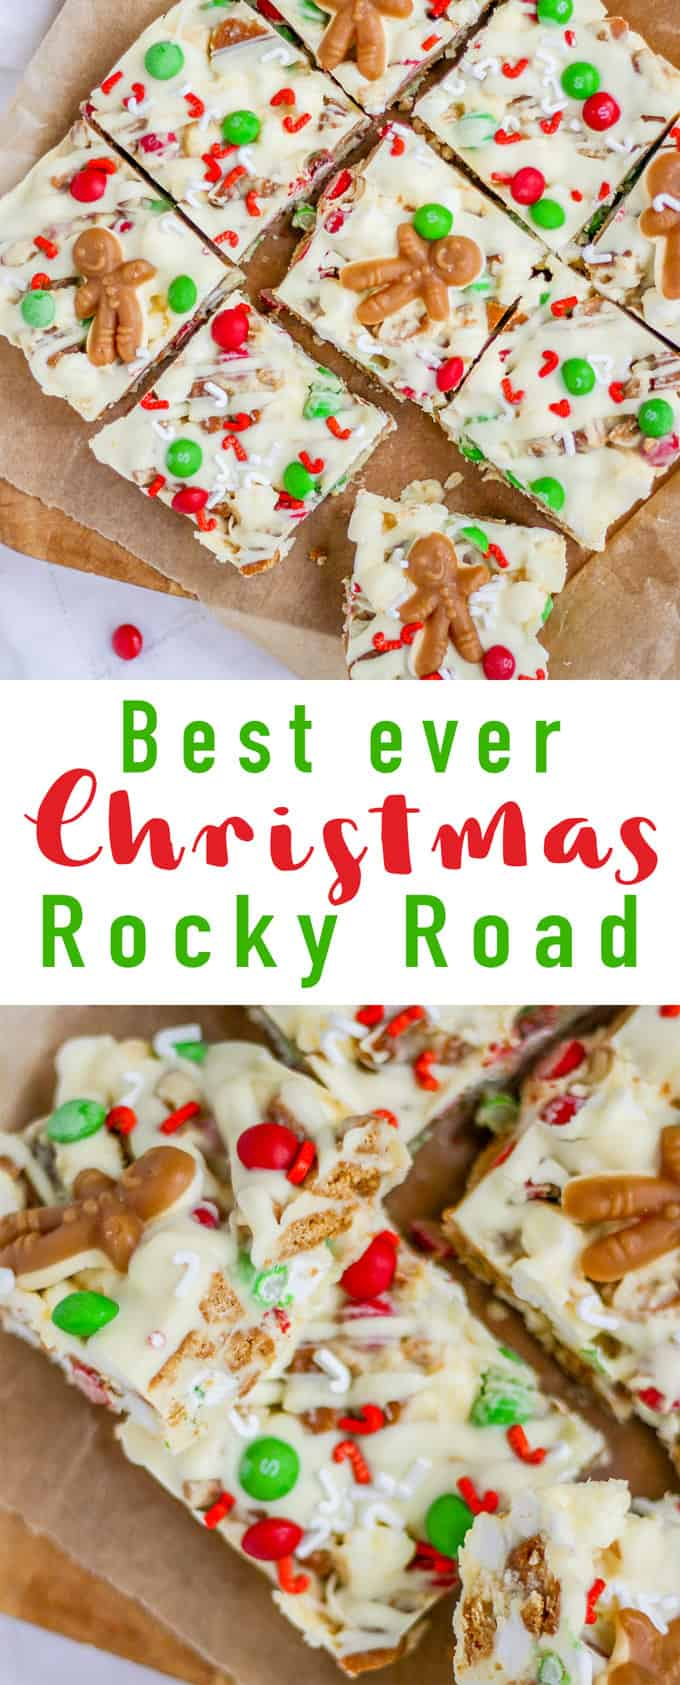 Christmas Rocky Road - The perfect festive sweet or dessert for Christmas. Make this no bake treat in December for parties or homemade gifts for friends and family.